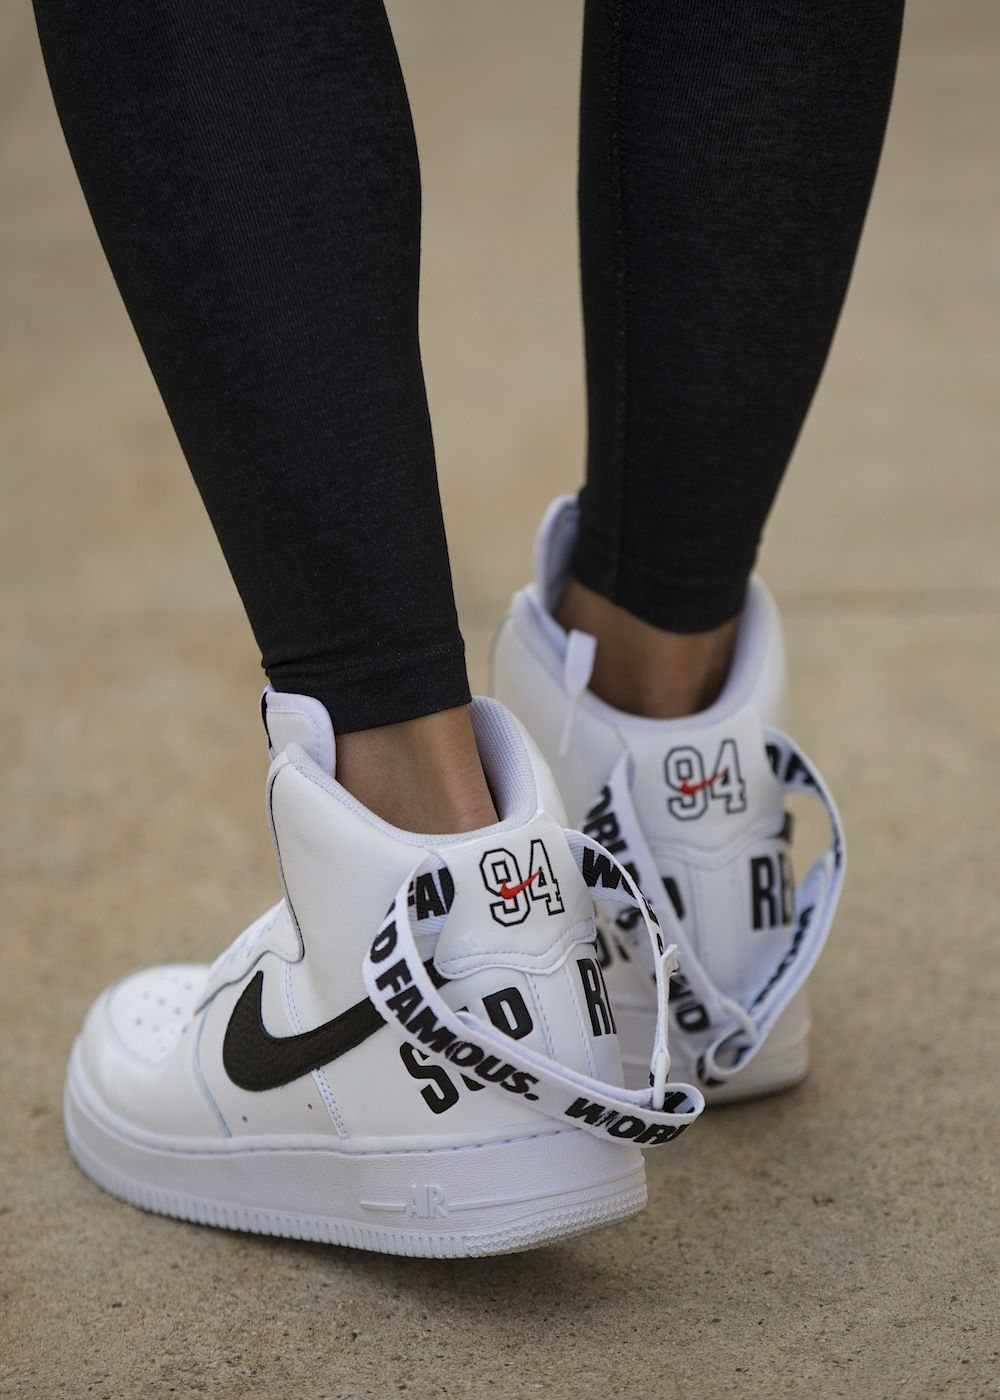 Burnell Cook on | Nike shoes in 2019 | Nike shoes, Nike